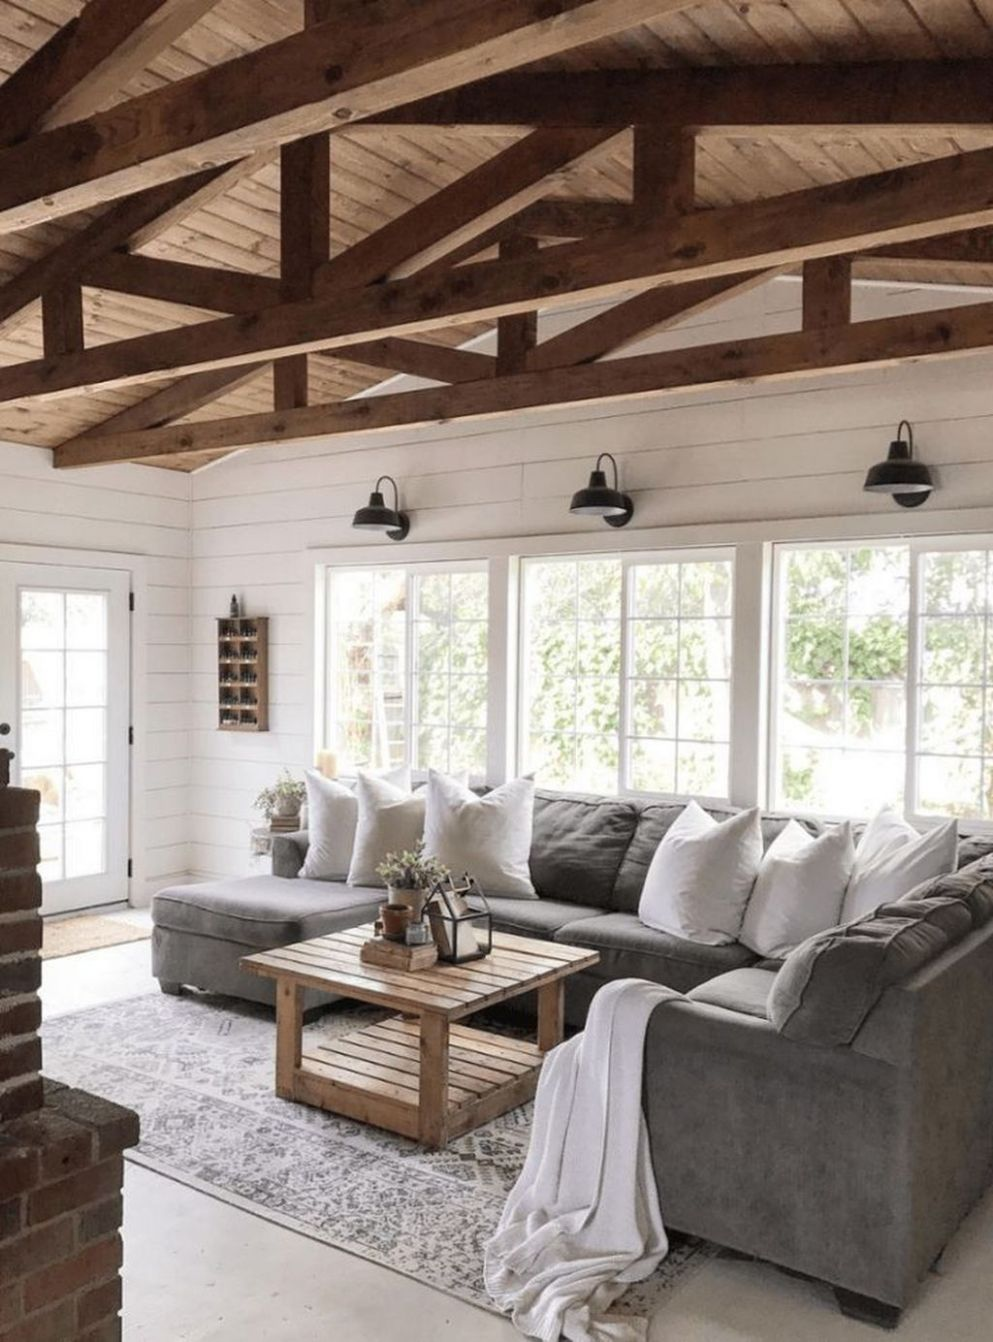 Awesome 8 Cozy Modern Rustic Living Room Decor Ideas You Must Try ..